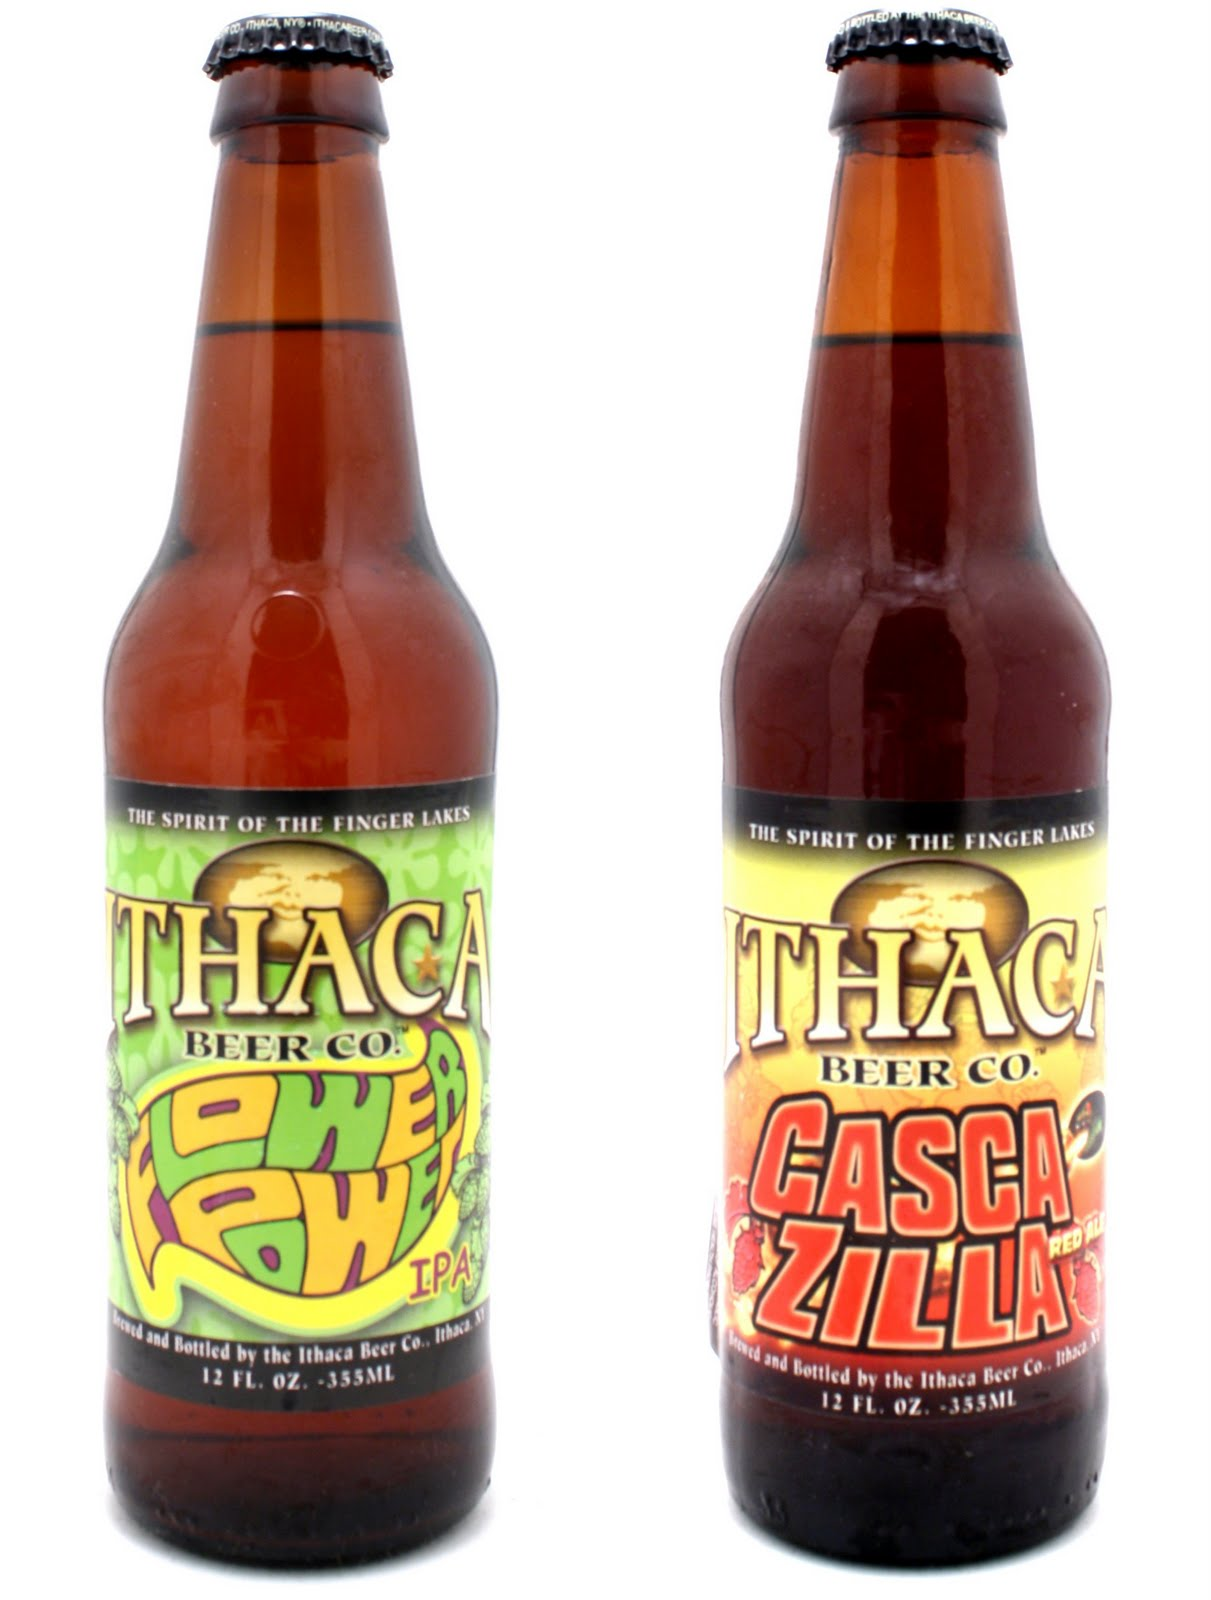 The Cellar Forum Flower Power & Casca Zilla From Ithaca Beer Co